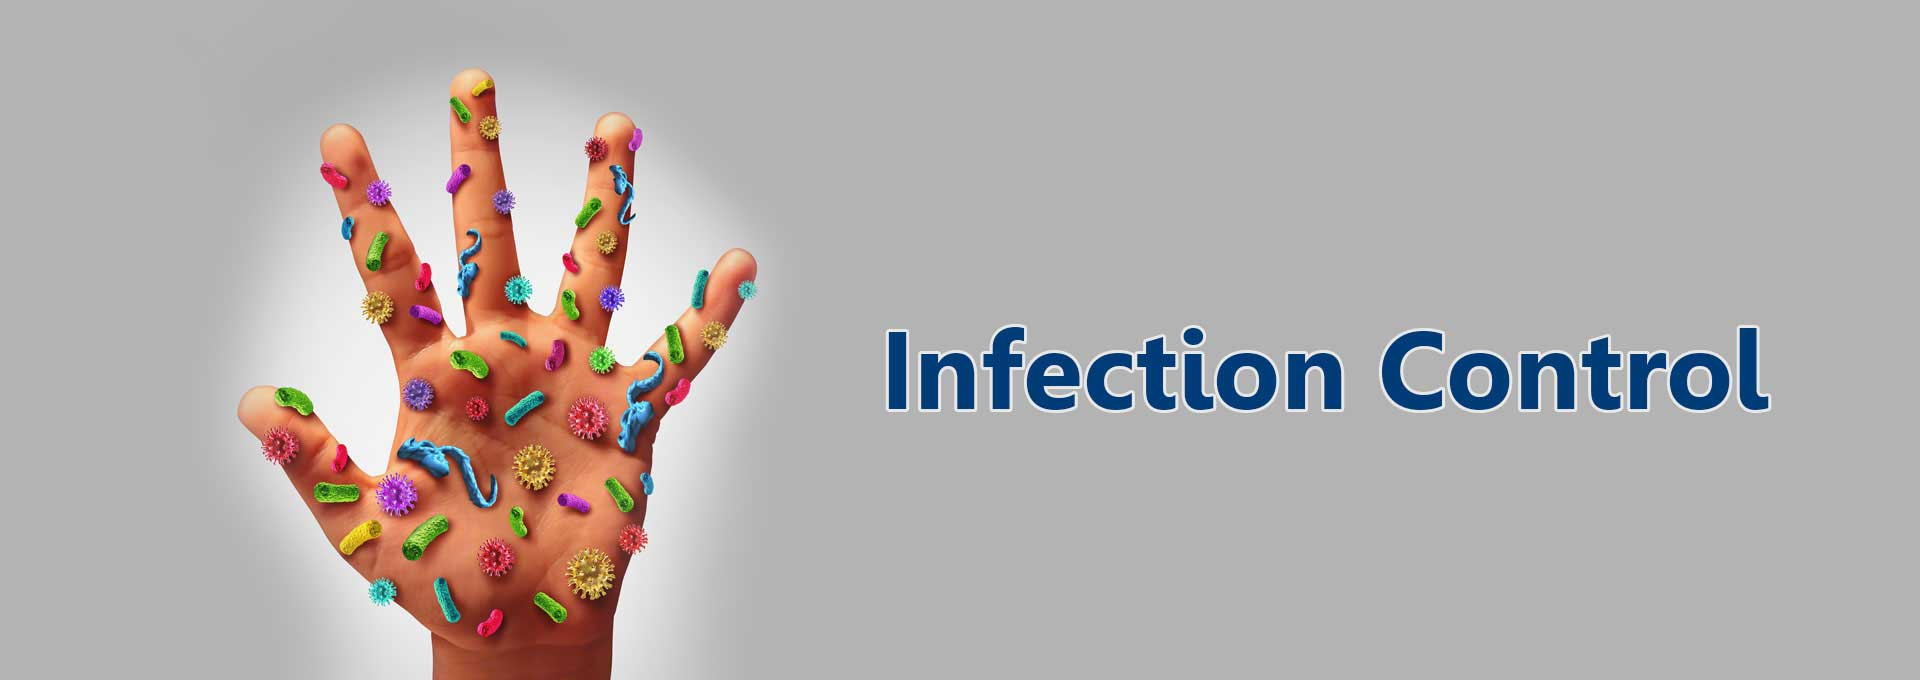 infection conreol If incontinence is a new problem, consult with the doctor to rule out potential causes such as a urinary tract infection, weak pelvic muscles or medications.